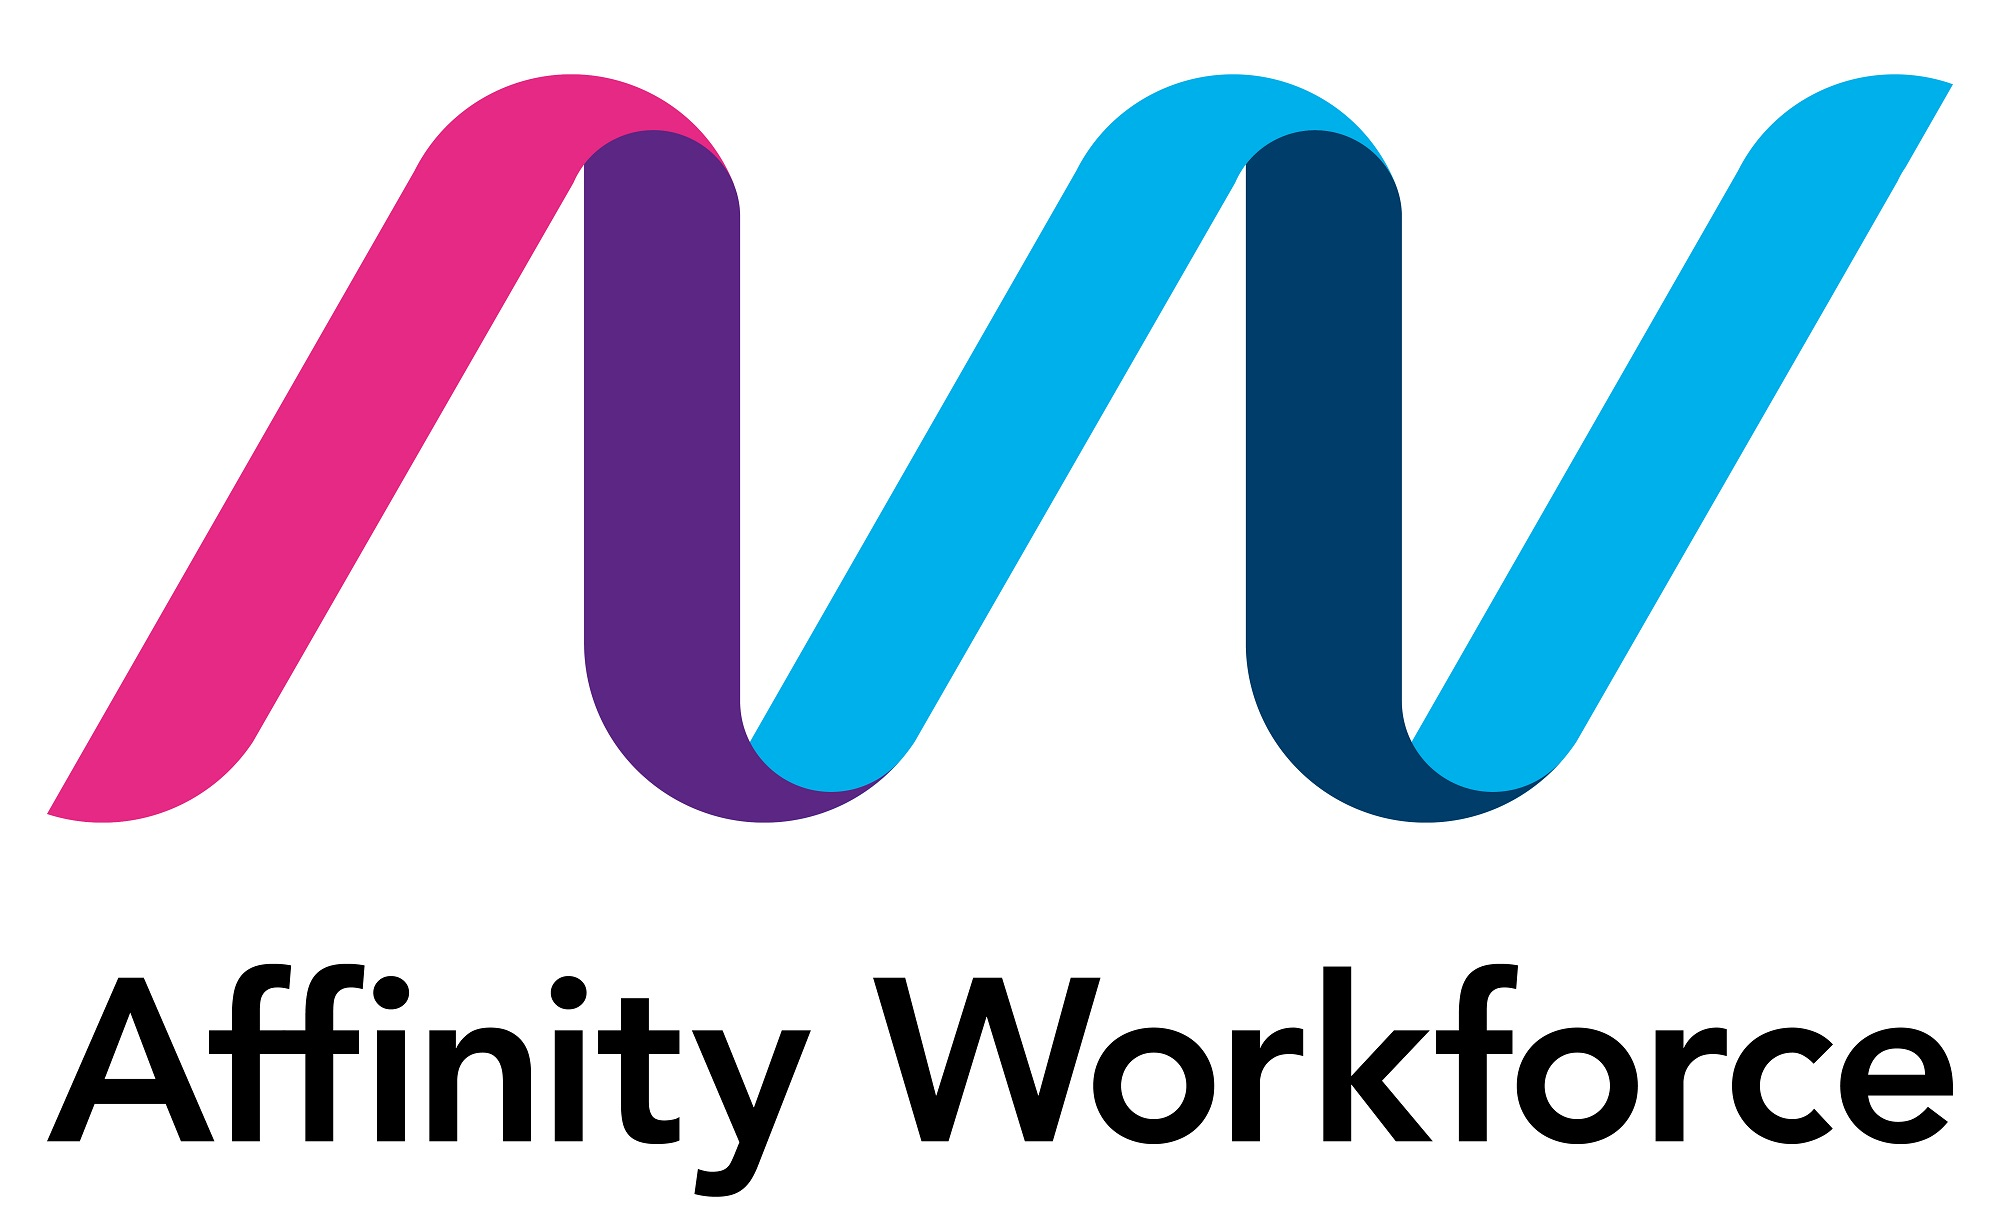 Affinity Workforce